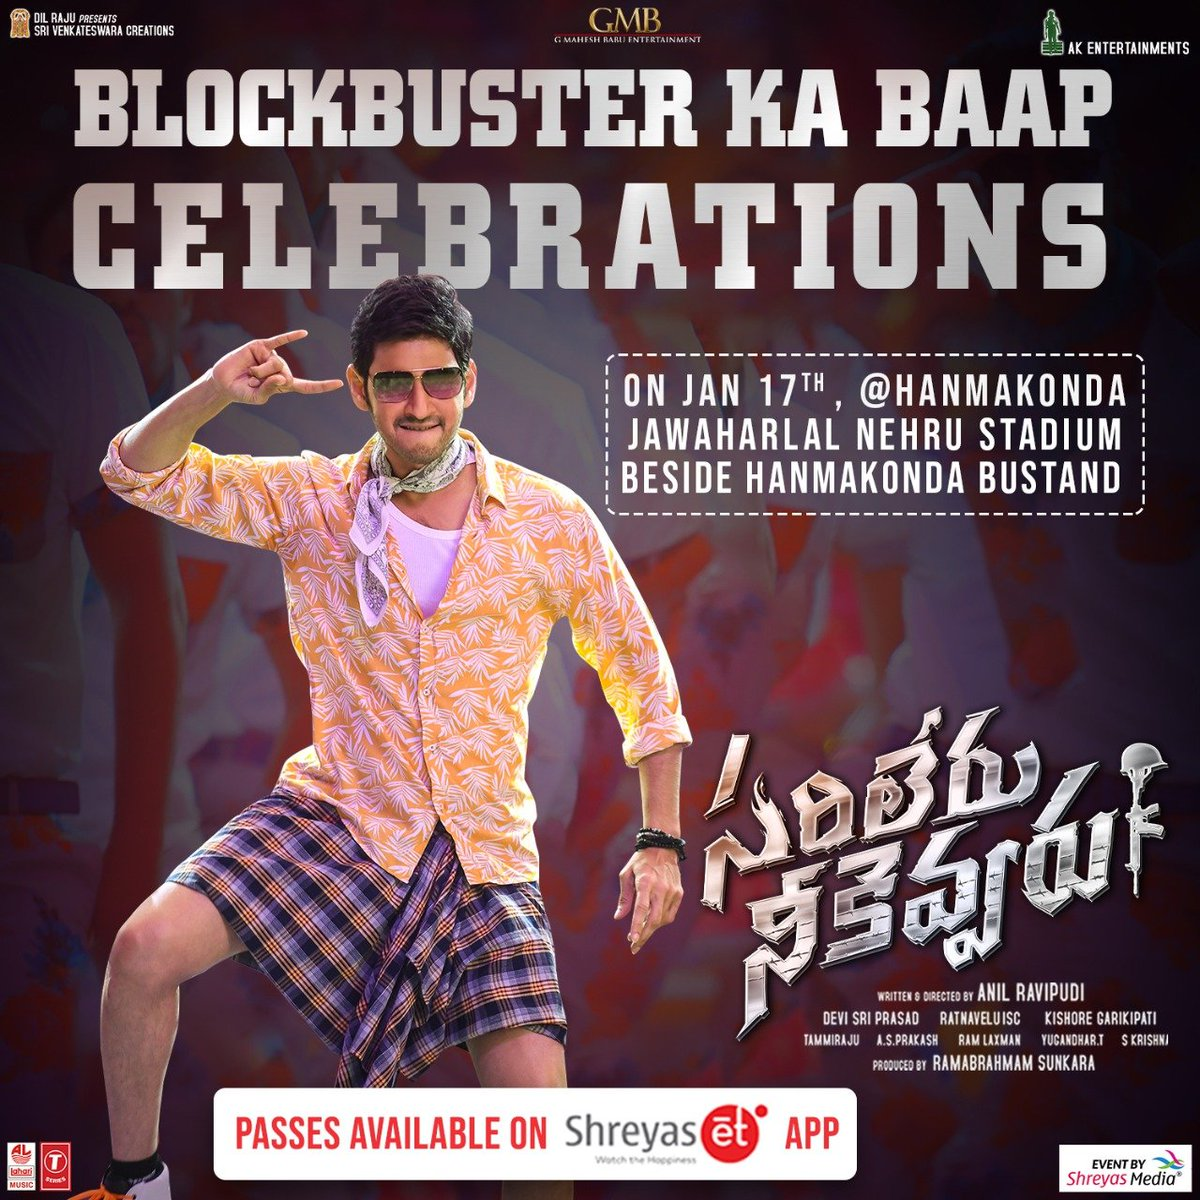 The #BlockbusterKaBaapCelebrations 🥁 are happening on the 17th Jan at Jawaharlal Nehru Stadium, Hanmakonda, Warangal #BlockBusterKaBAAP 🤟 #SarileruNeekevvaru @urstrulyMahesh @AnilRavipudi @AnilSunkara1 @AKentsOfficial @GMBents @LahariMusic @SVC_official